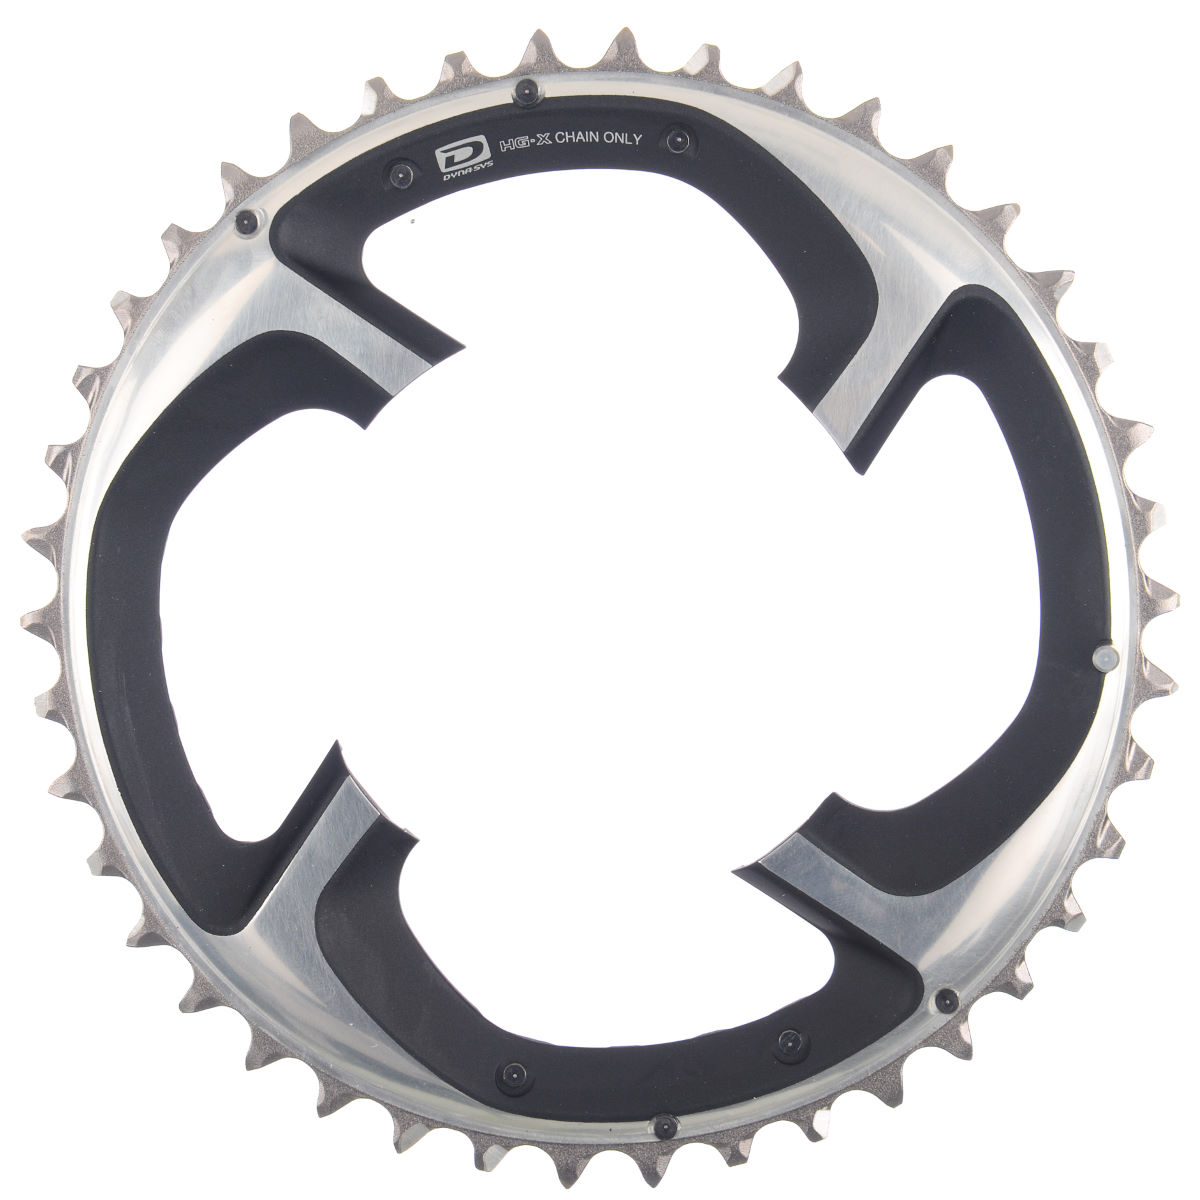 Plateau triple Shimano XTR FCM980 (10 vitesses) - 42t 10 Speed